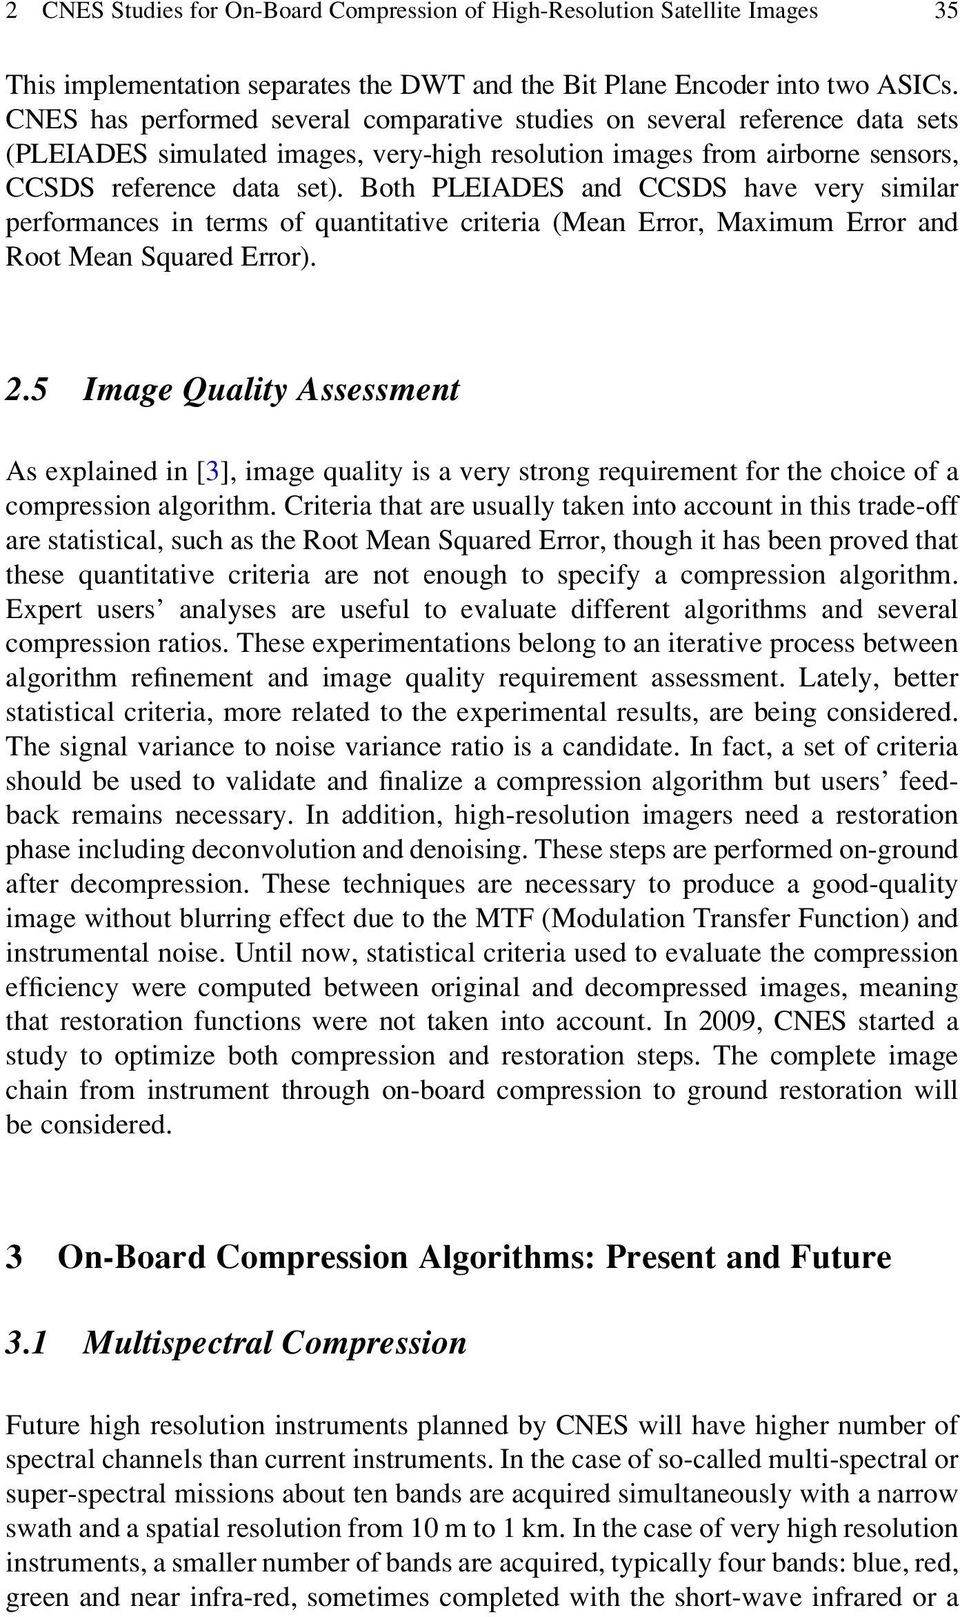 Chapter 2 Cnes Studies For On Board Compression Of High Resolution Res Jpeg A Circuit With Binary Codes As The Background Both Pleiades And Ccsds Have Very Similar Performances In Terms Quantitative Criteria Mean Error